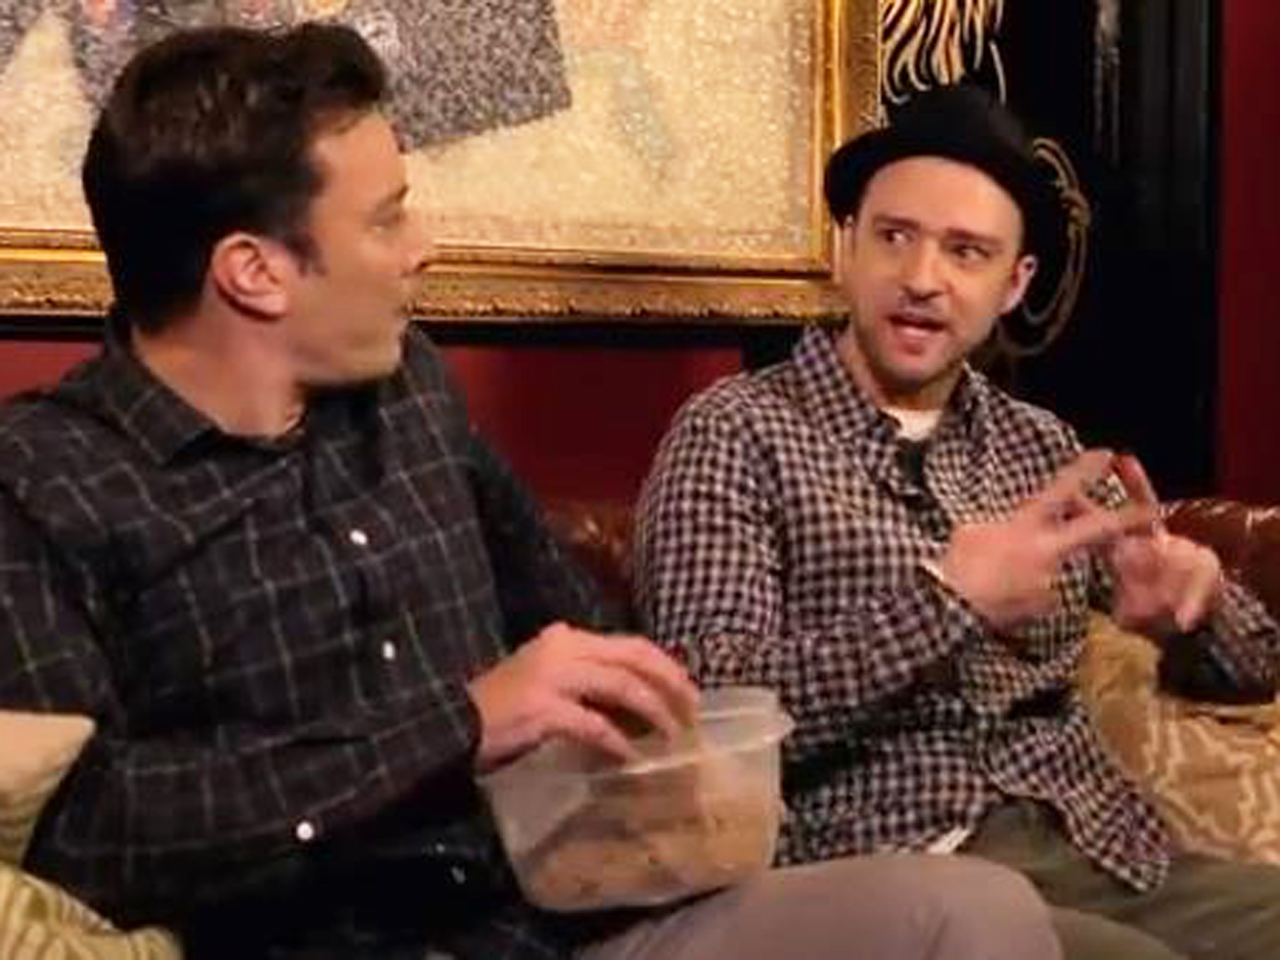 Image: Jimmy Fallon and Justin Timberlake